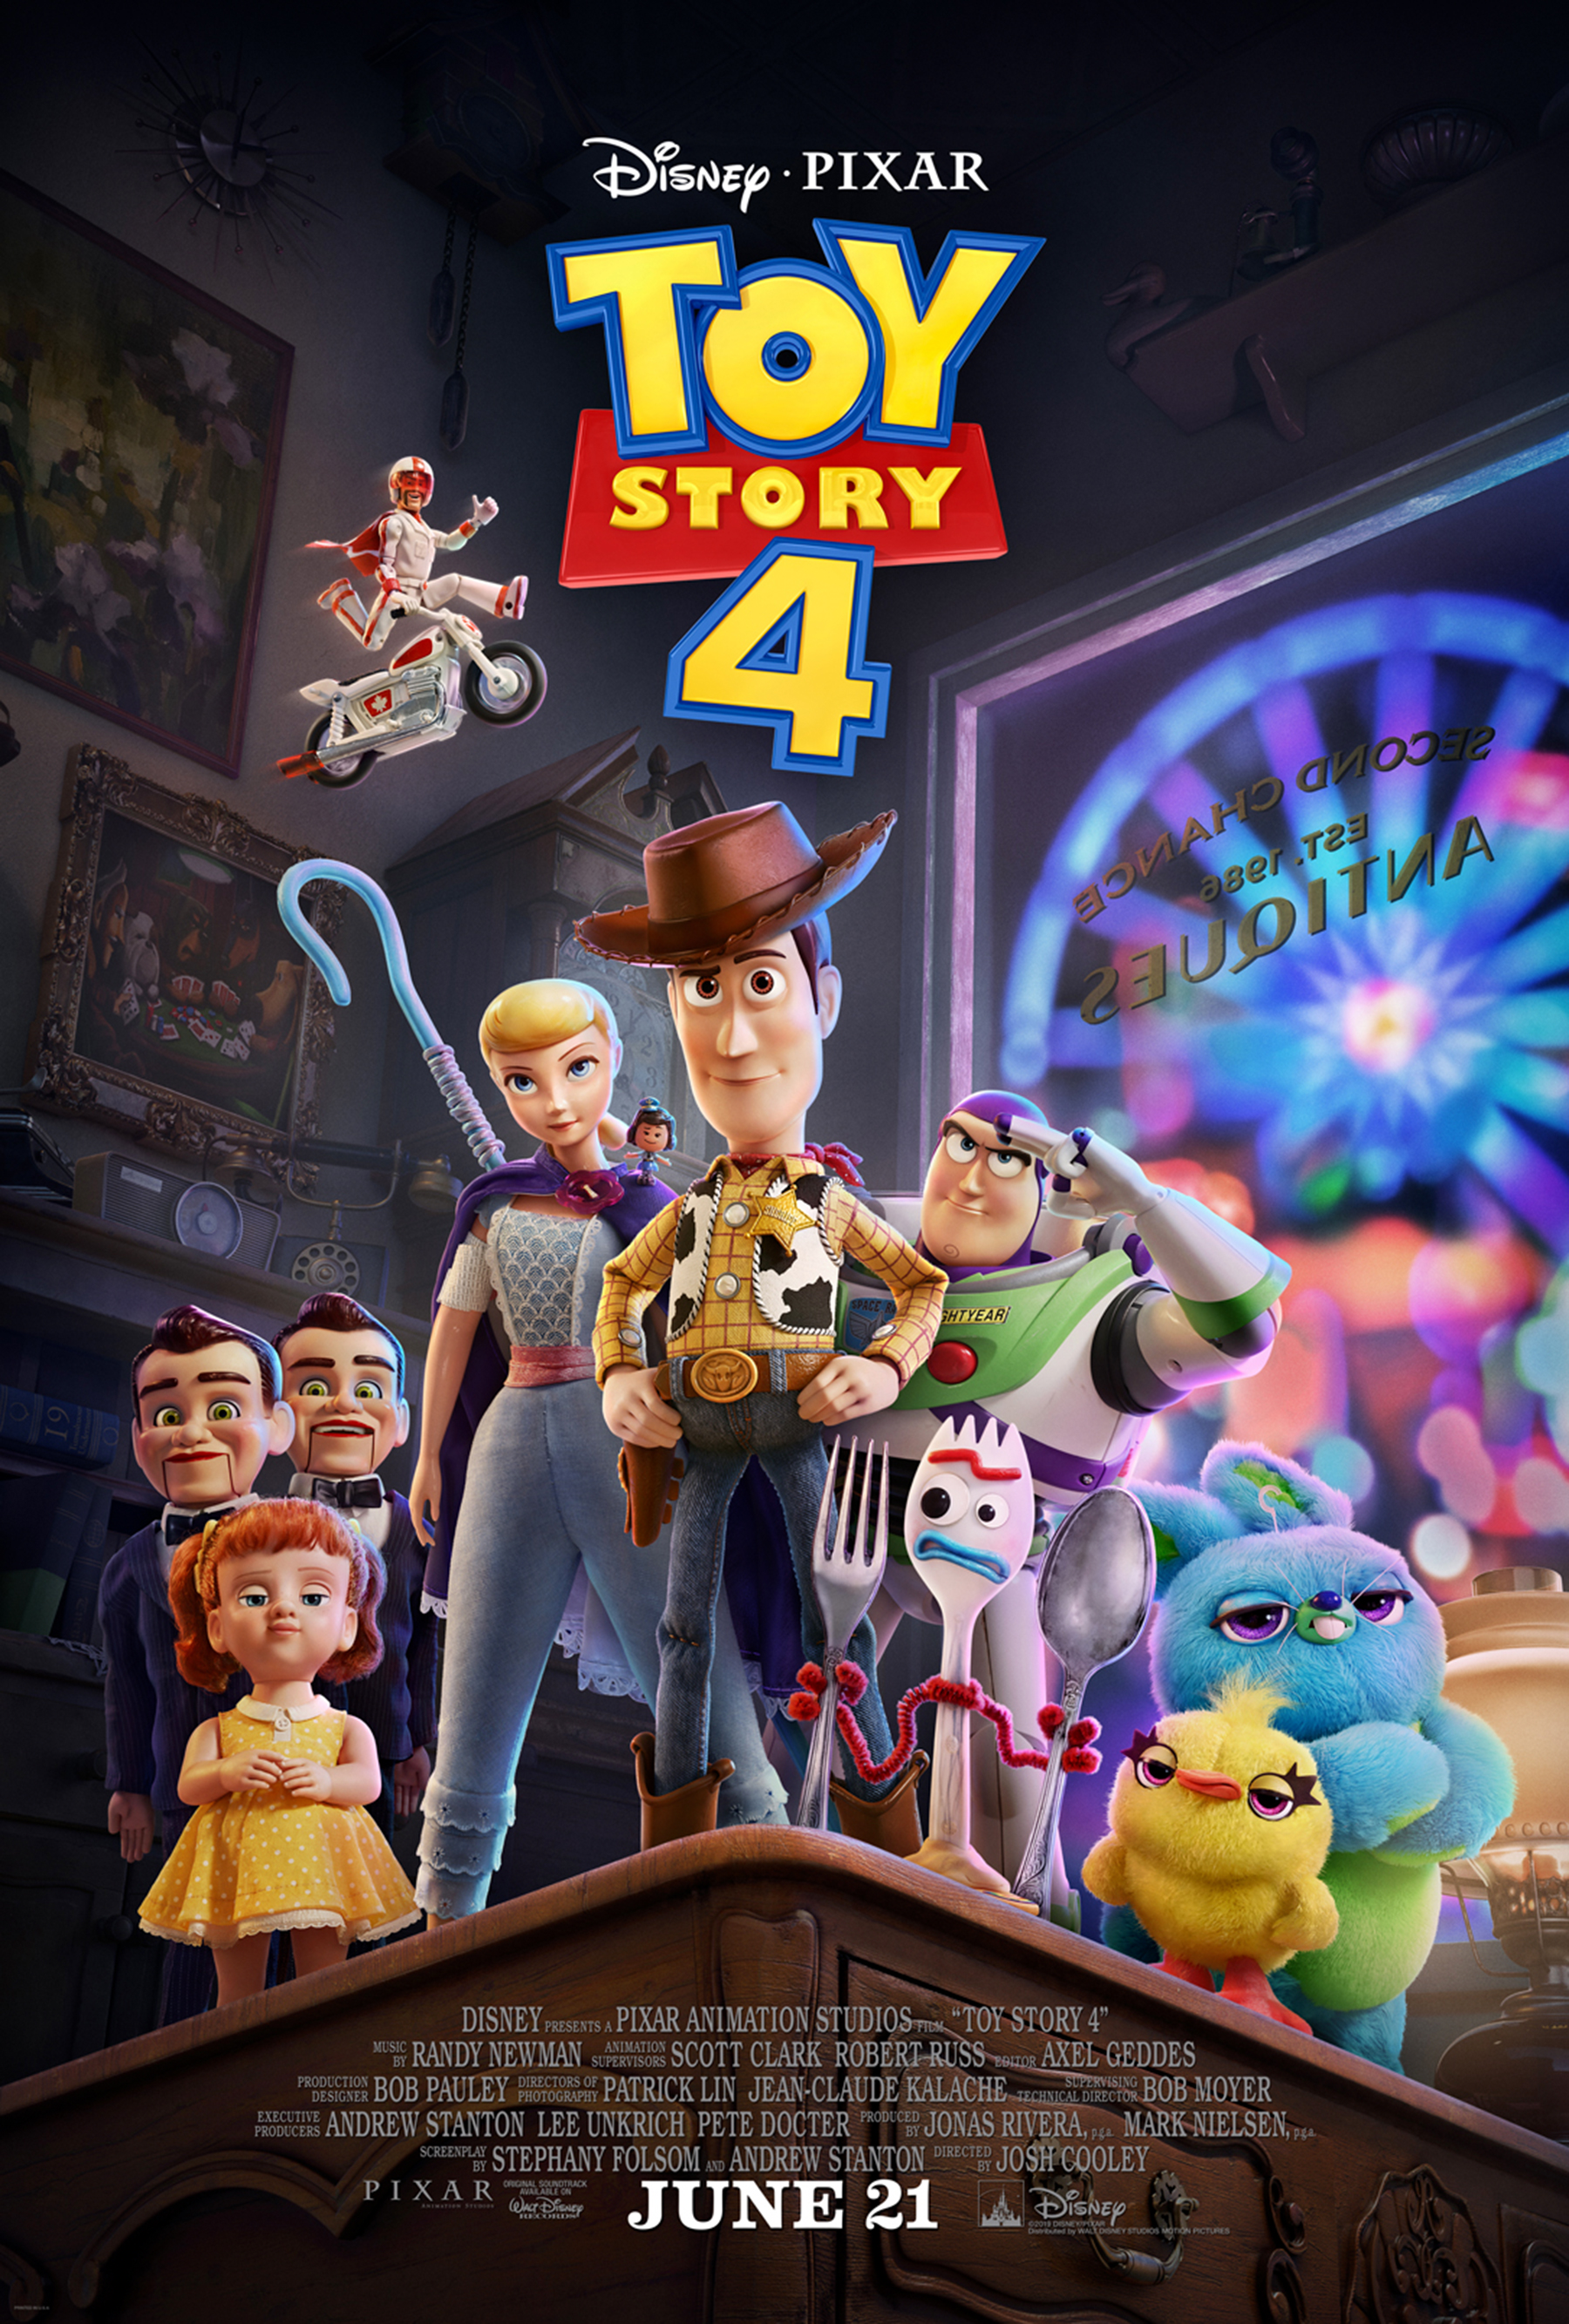 Pixar Toy Story 4: Toy Story 4